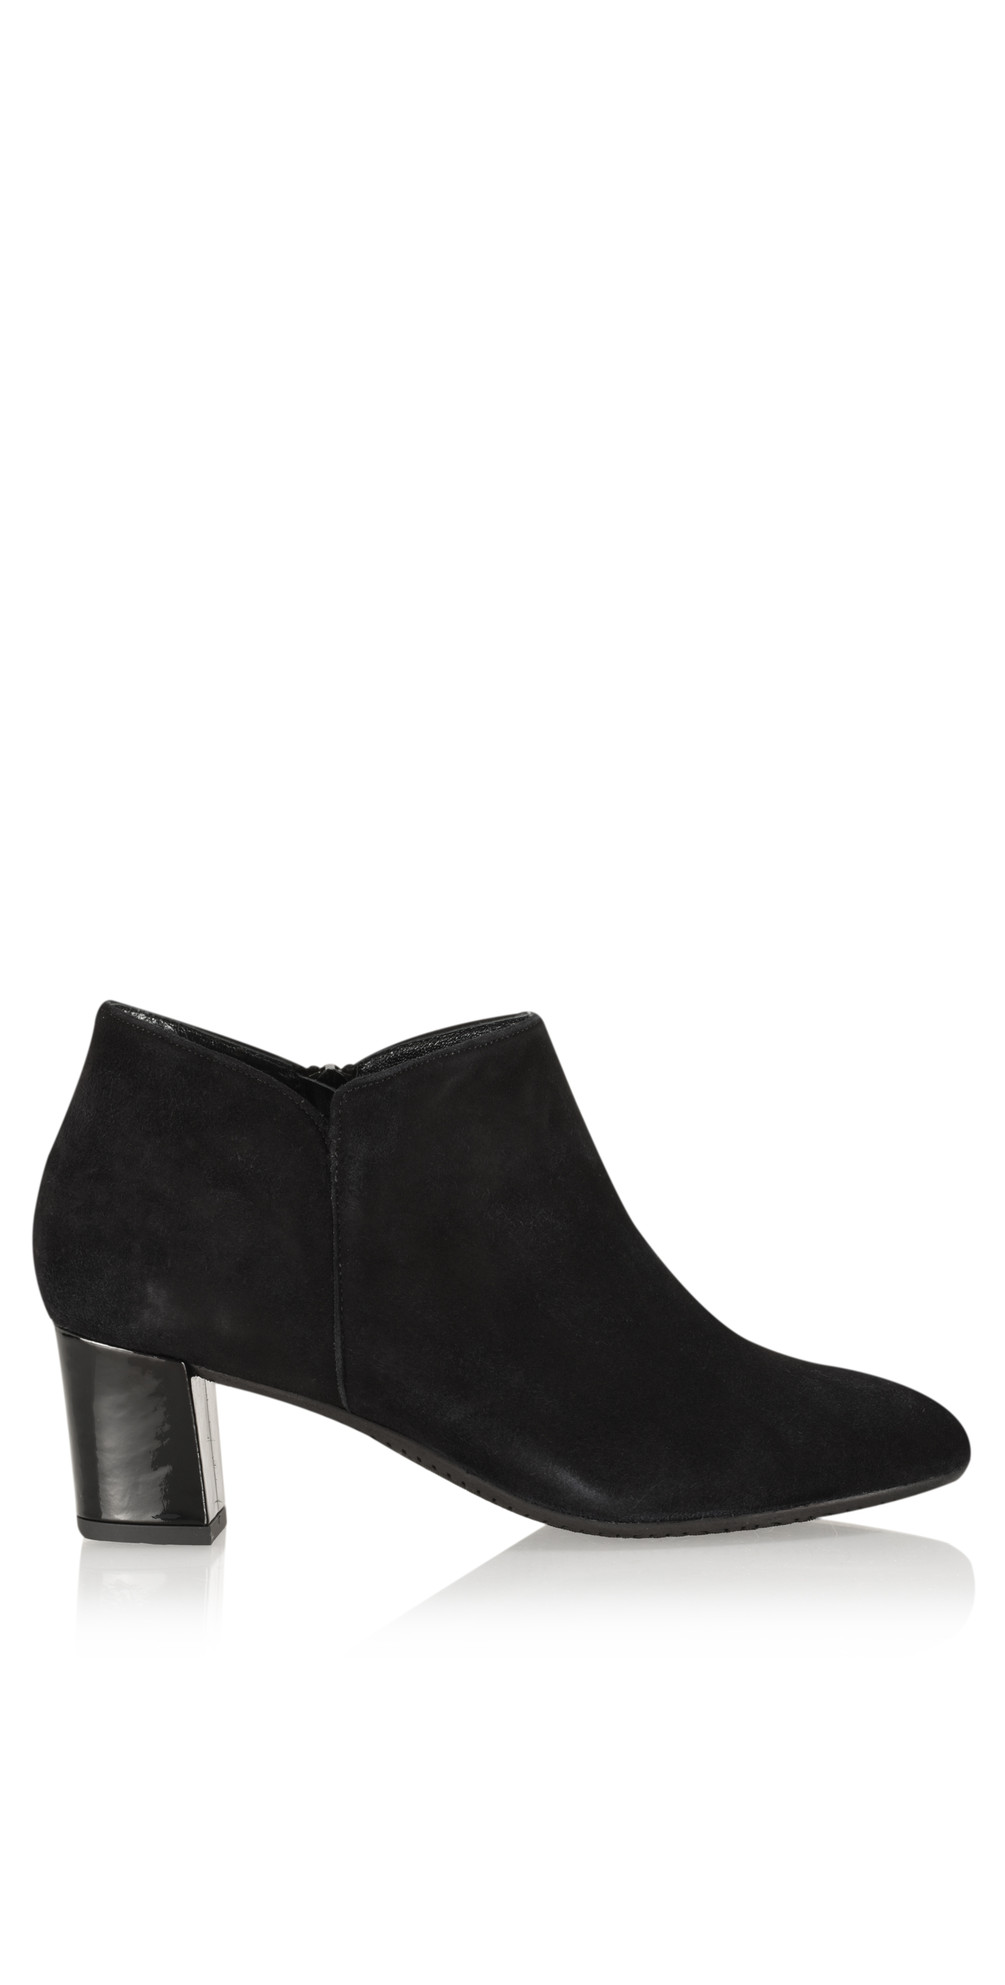 343477876a78 Gemini Label Isco Suede Ankle Boot in Black